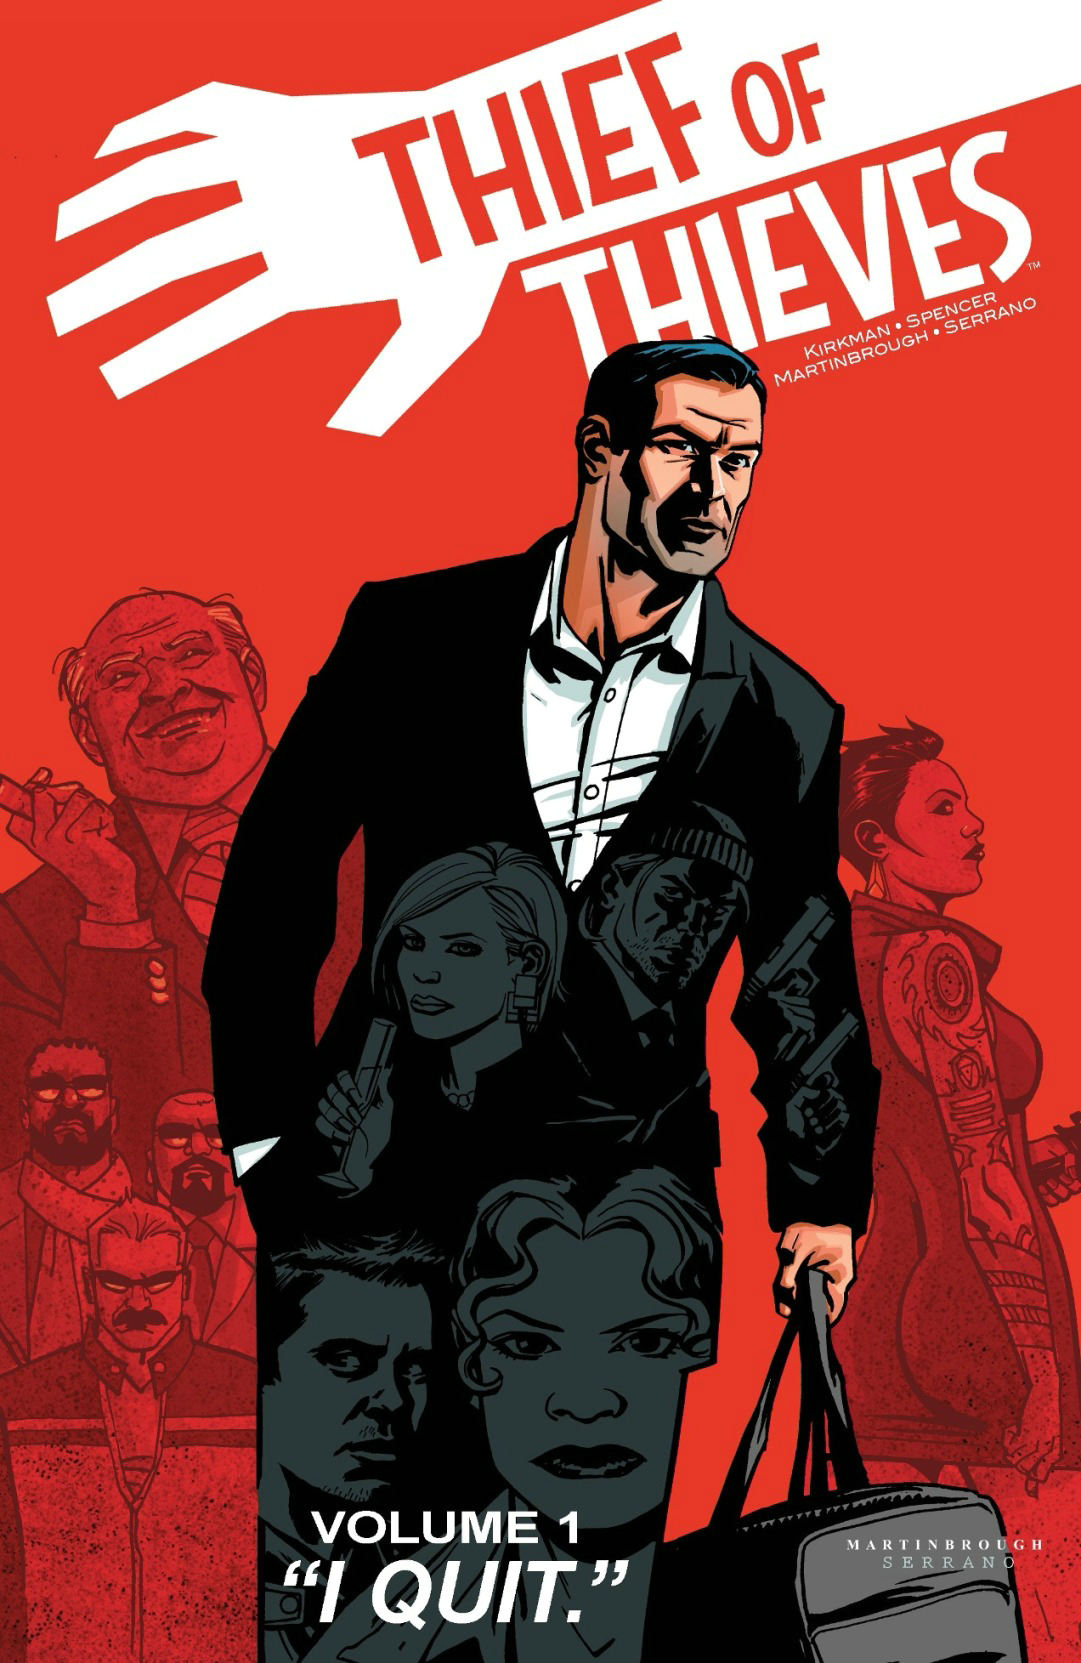 THIEF OF THIEVES TP VOL 01 (JUL120437) (MR)